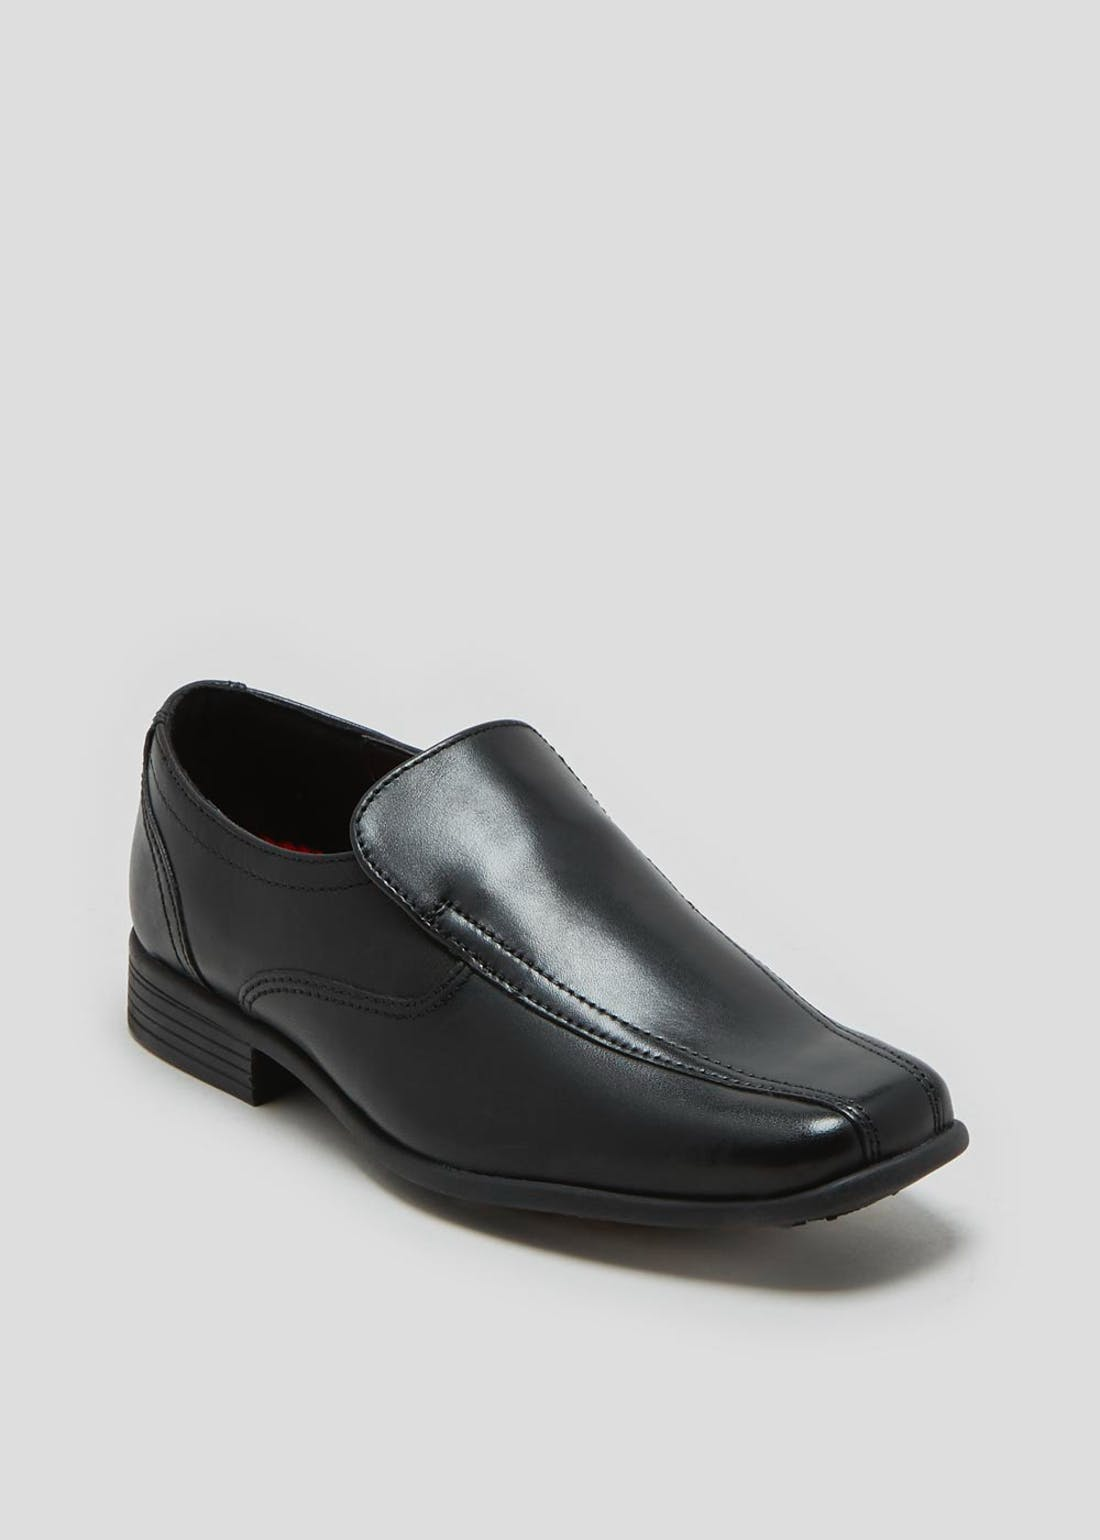 Boys Real Leather Slip On Shoes (Younger 8-Older 6)